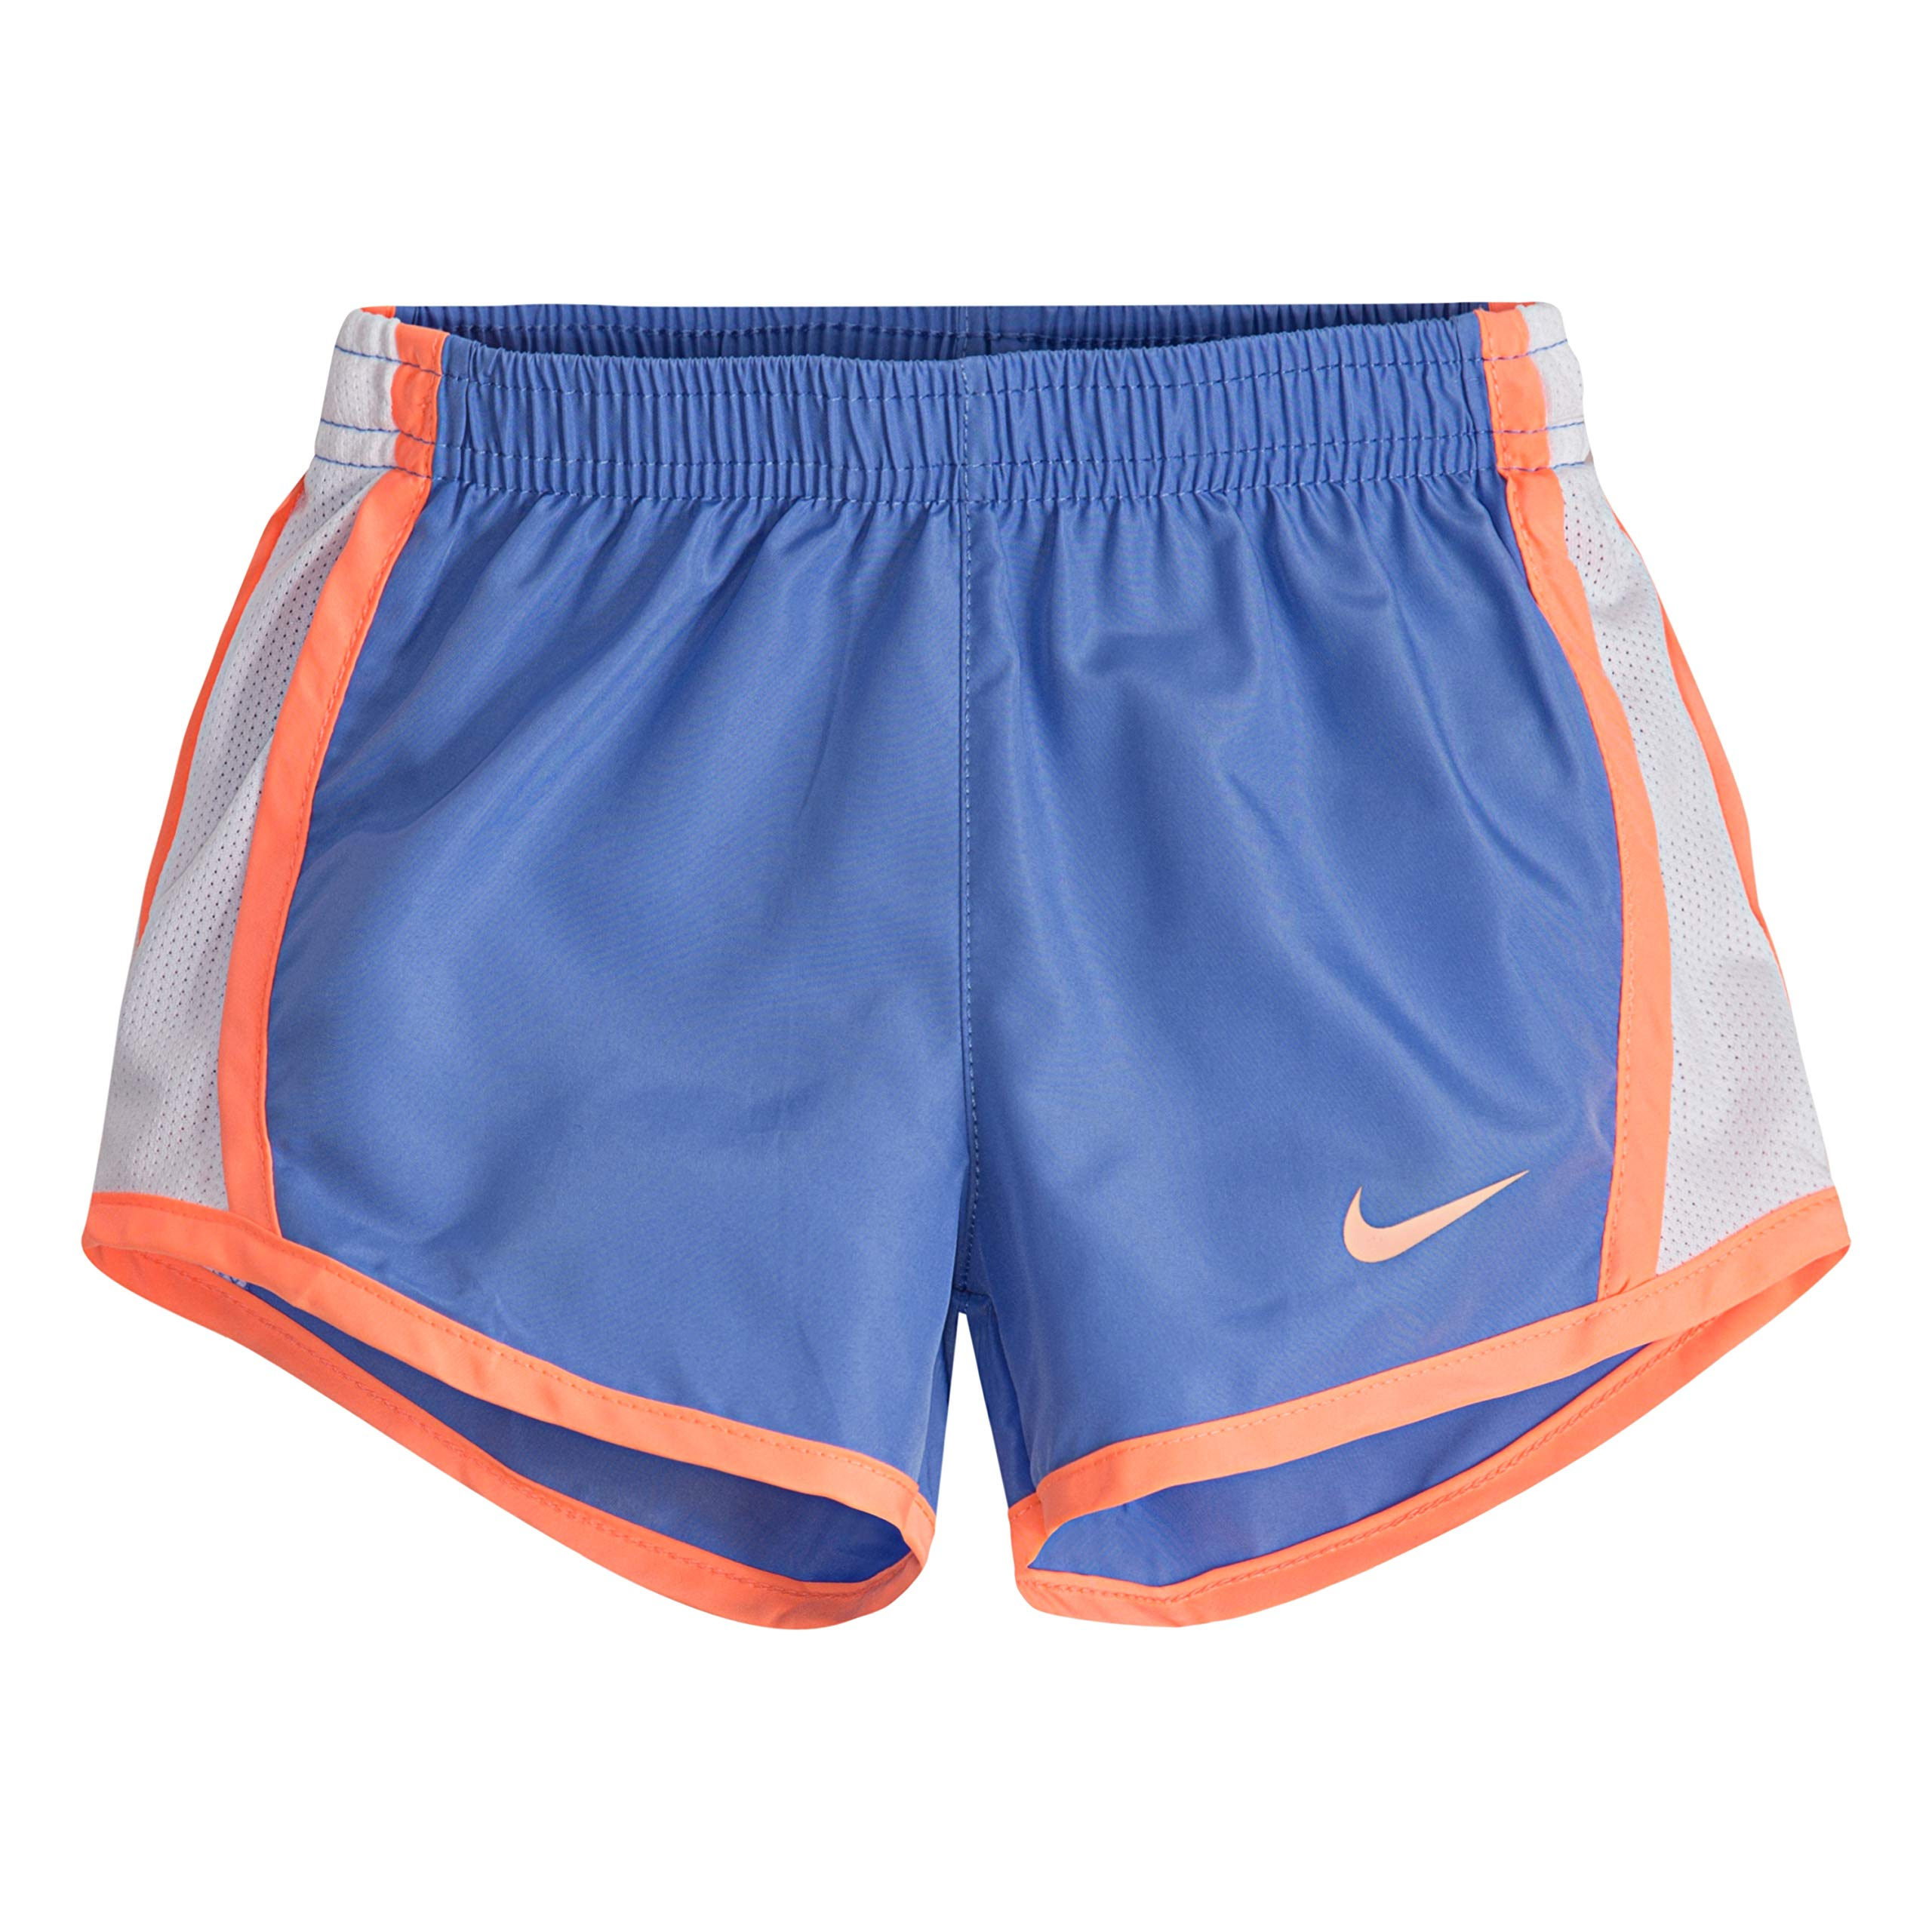 NIKE Children's Apparel Girls' Toddler Dri-FIT Tempo Shorts, Royal Pulse, 3T by NIKE Children's Apparel